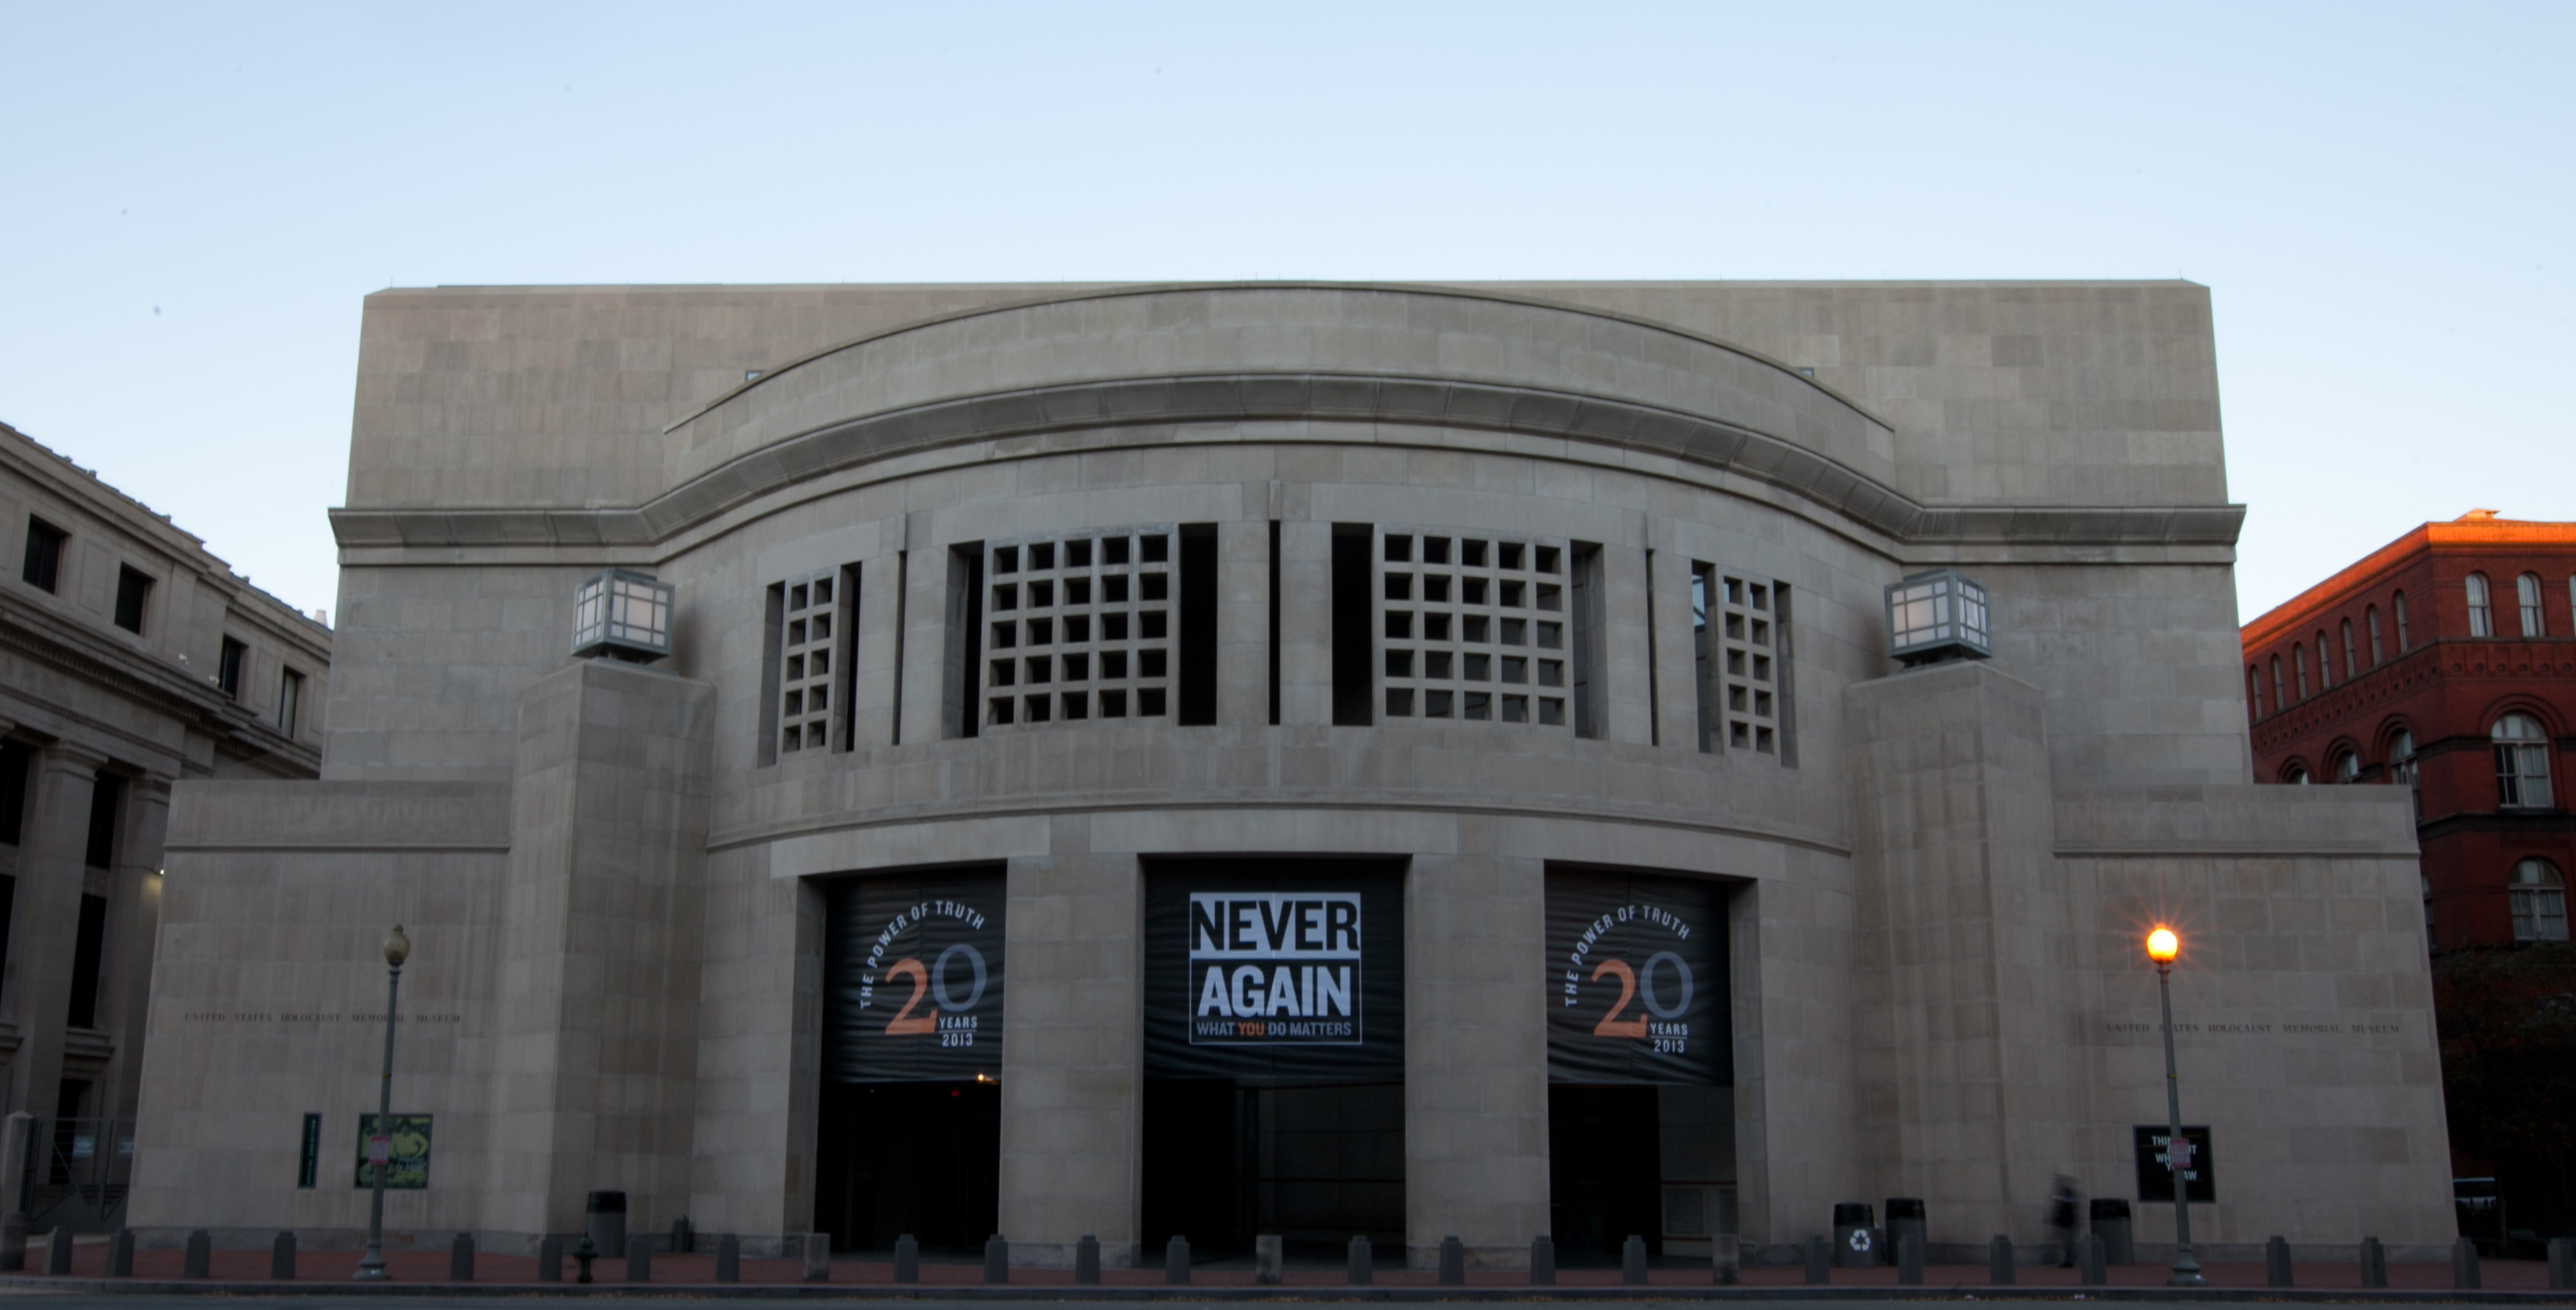 Opinions on United States Holocaust Memorial Museum